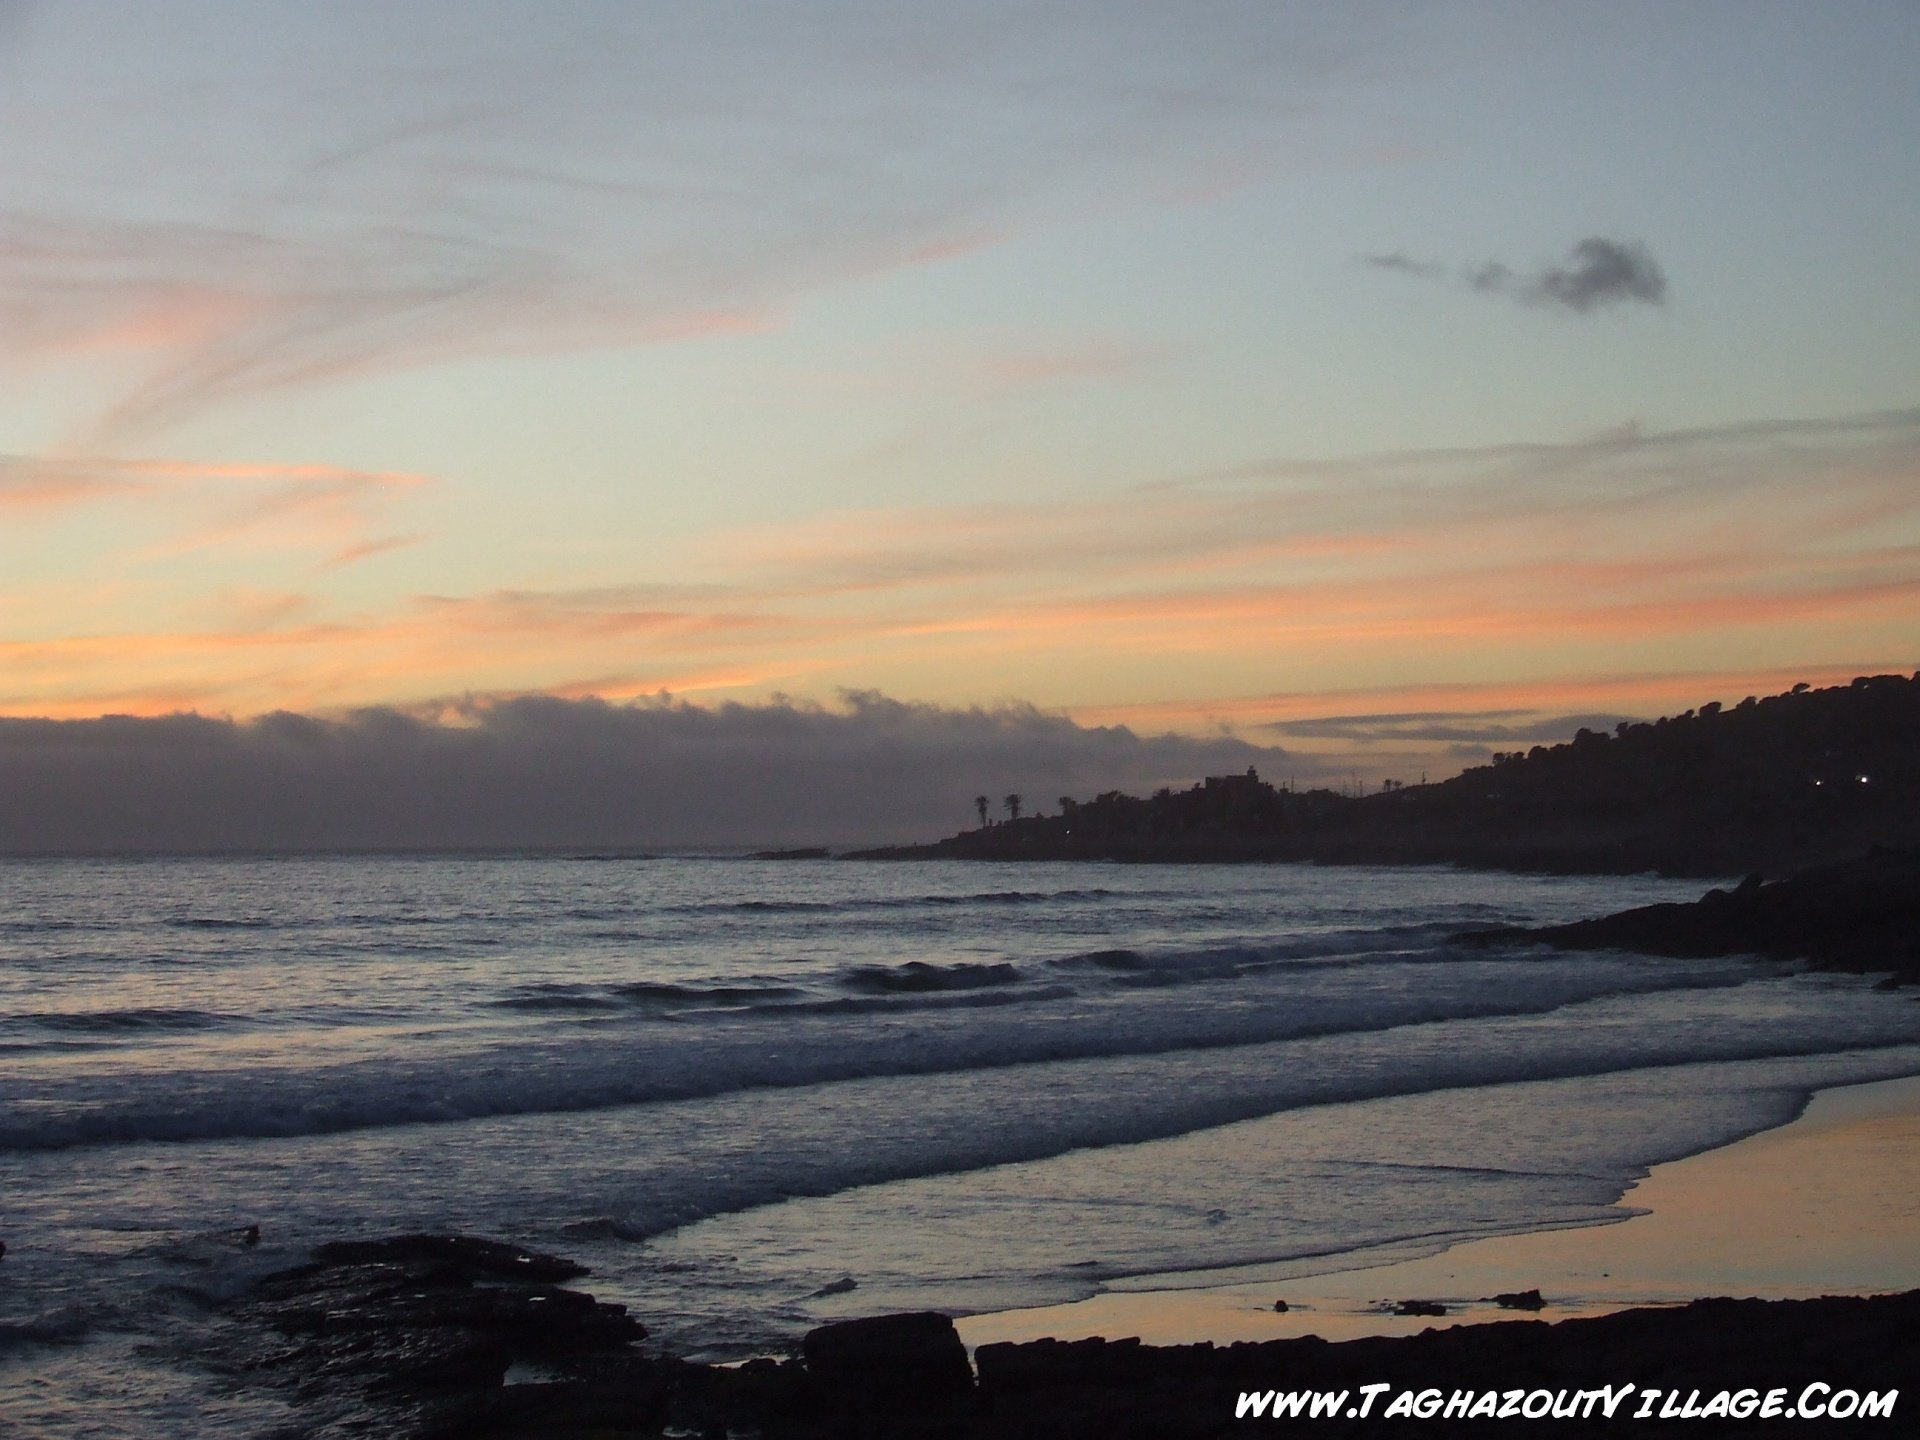 TaghazoutVillage.Com's photo of Taghazout